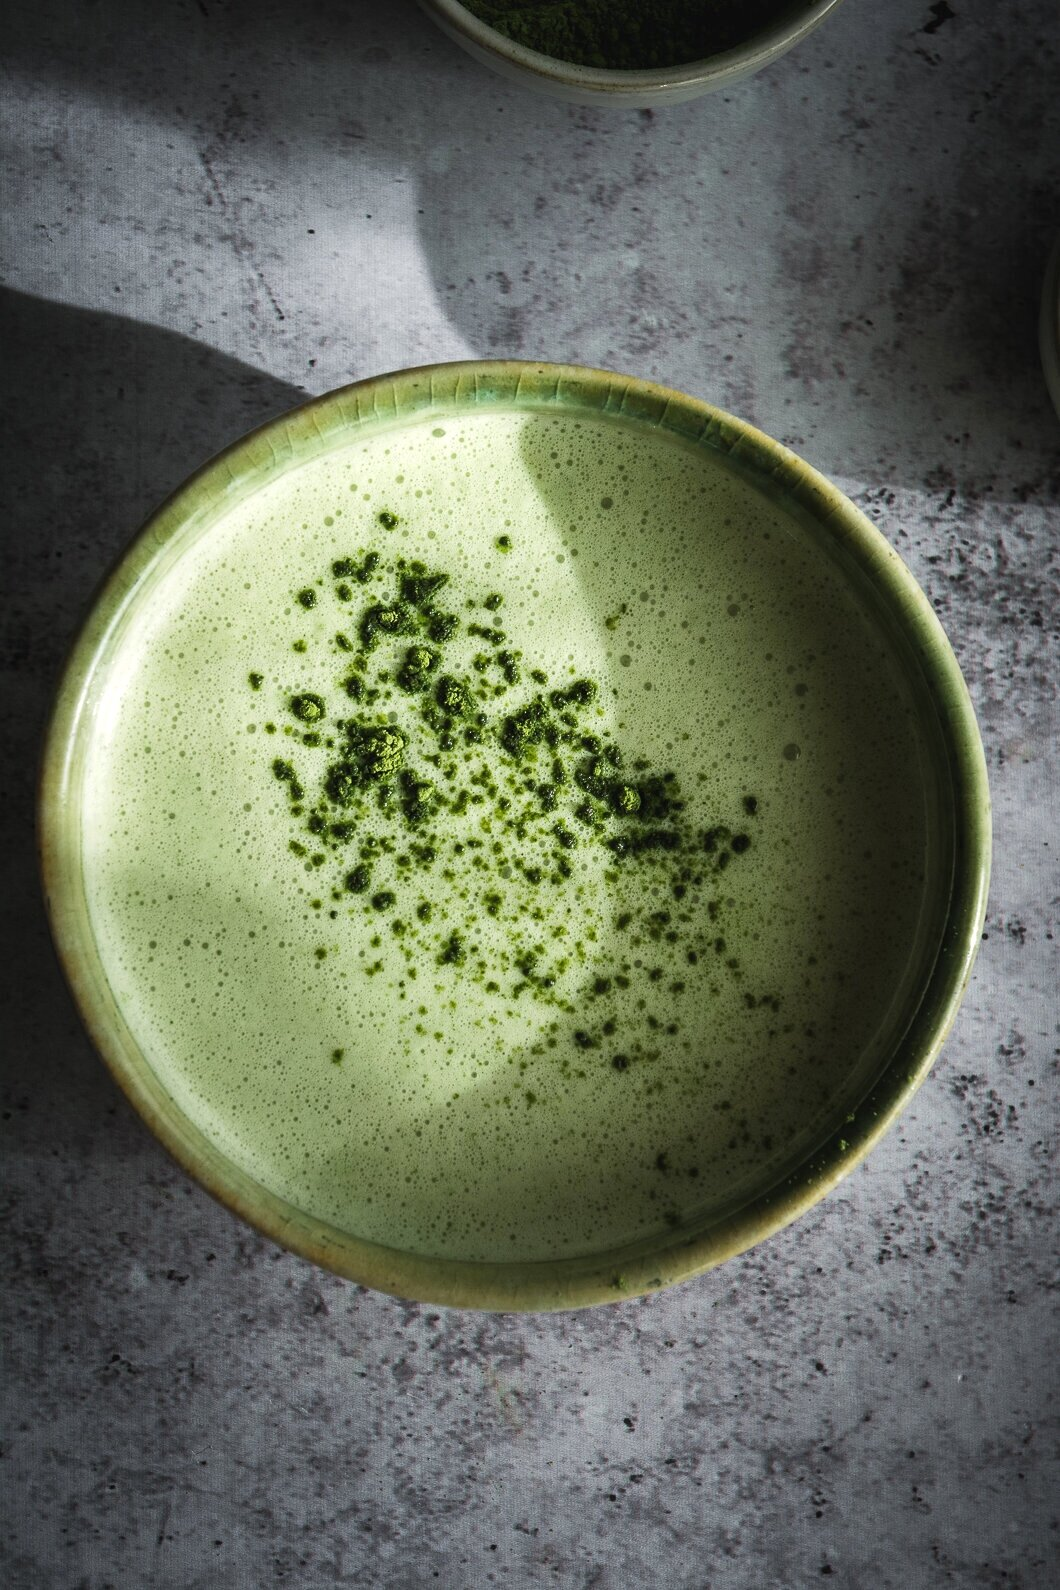 This nutrient dense matcha and moringa latte is the perfect way to start the day or drink as an afternoon pick-me up. It's rich in antioxidants and amino acids, low carb, paleo and vegan. And also very easy to make. #vegan #matcha #moringa #matchalatte #matchamoringalatte #matchinga #moringalatte #calmeats #paleo #veganlatte #healthydrinks #vegetarian